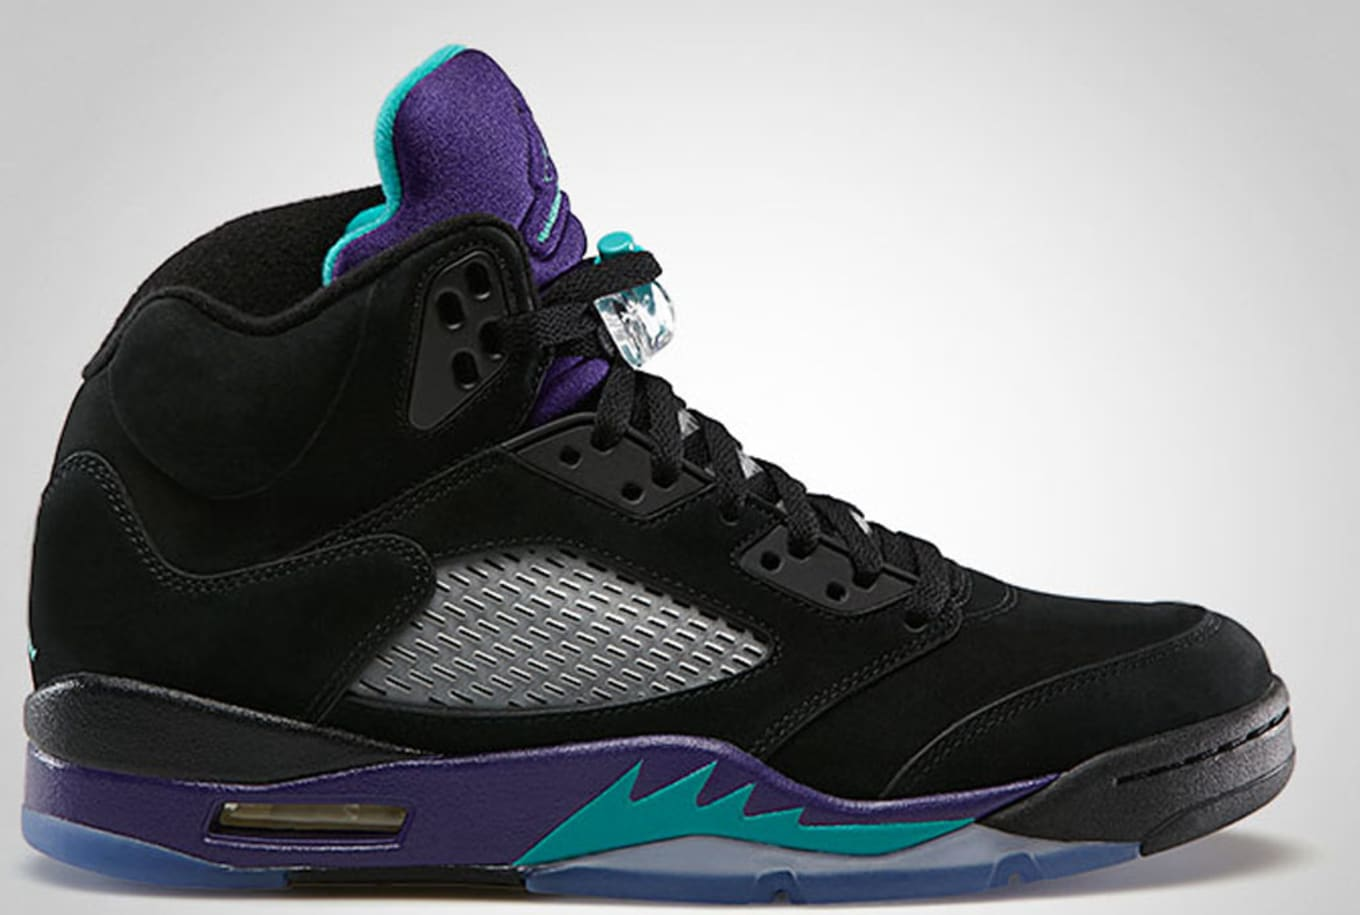 premium selection da4c3 c1859 Air Jordan 5 Retro  Black Grape